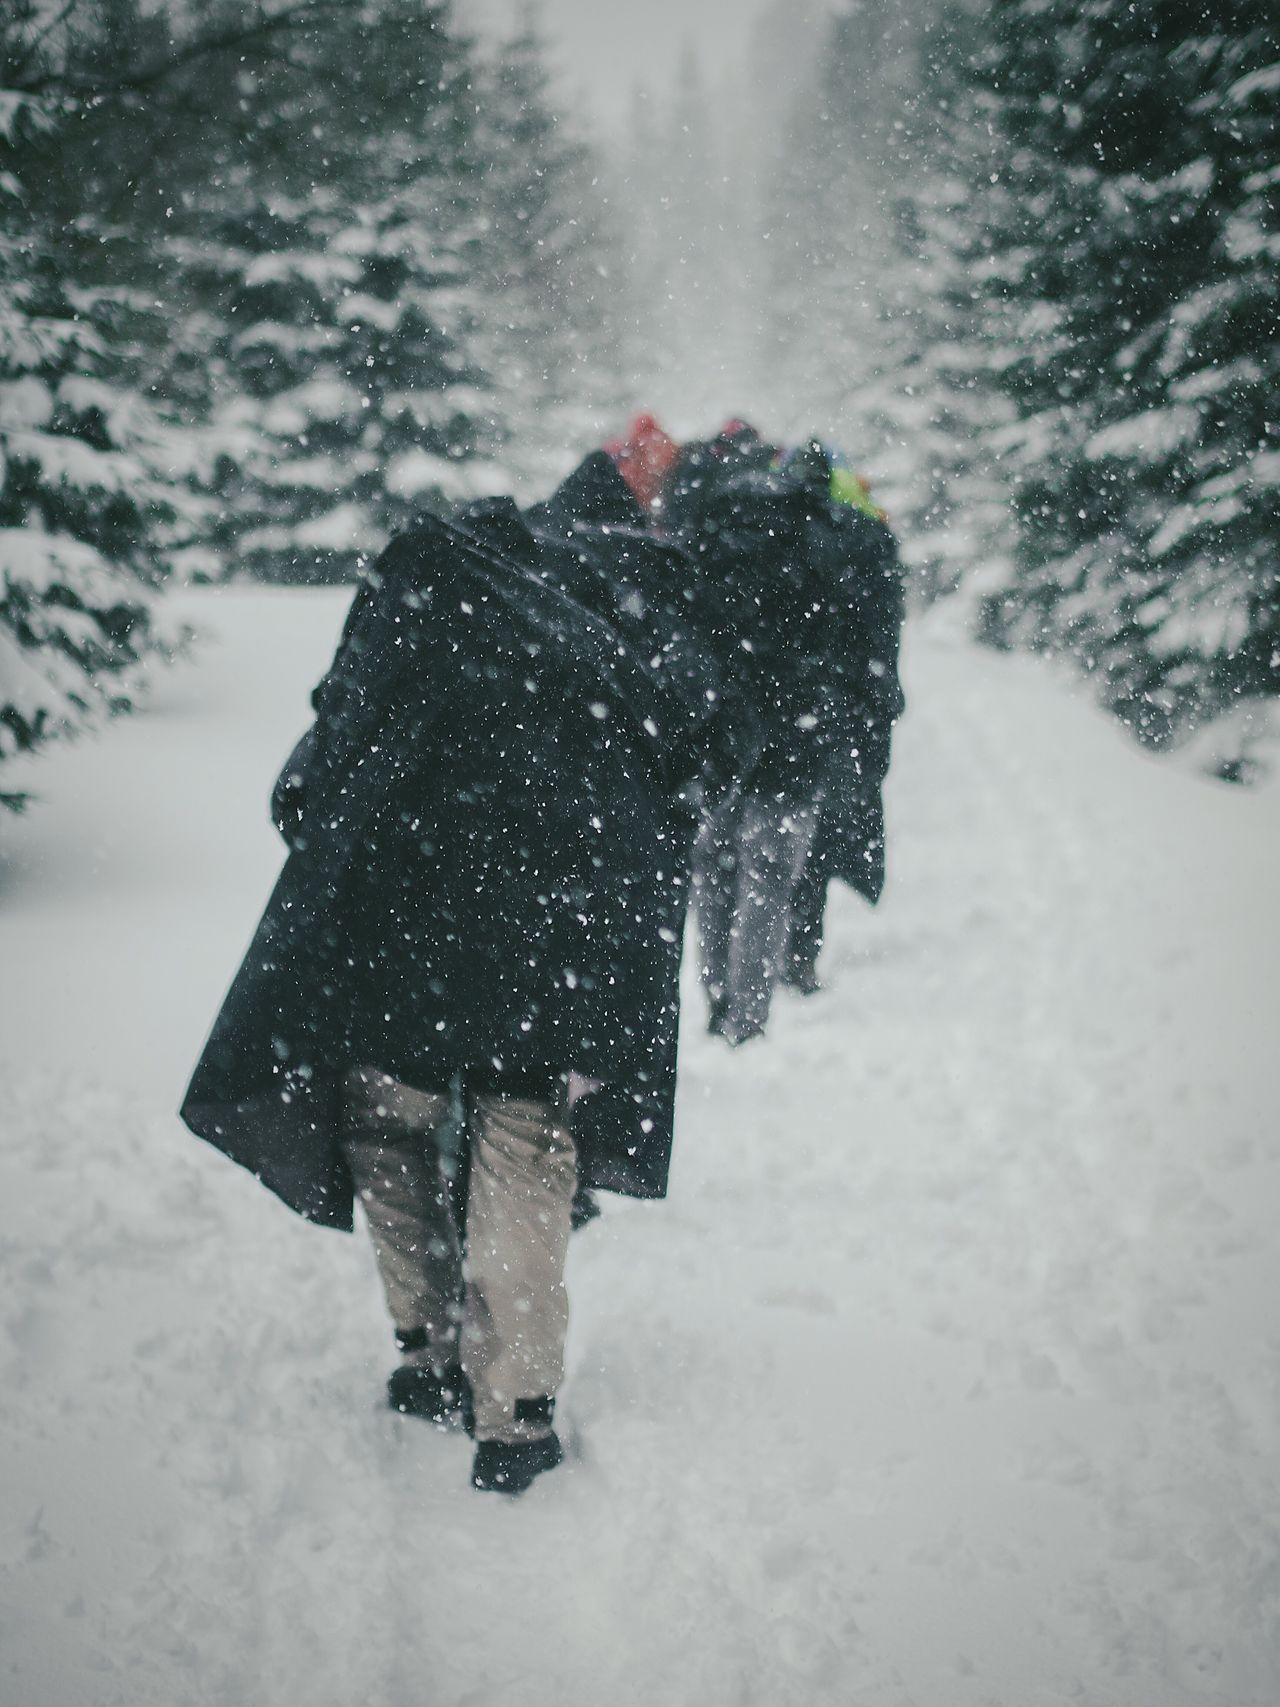 Cold Temperature Snow Winter Weather Real People Walking Outdoors Snowing Lifestyles Warm Clothing Rear View Nature Day One Person Men